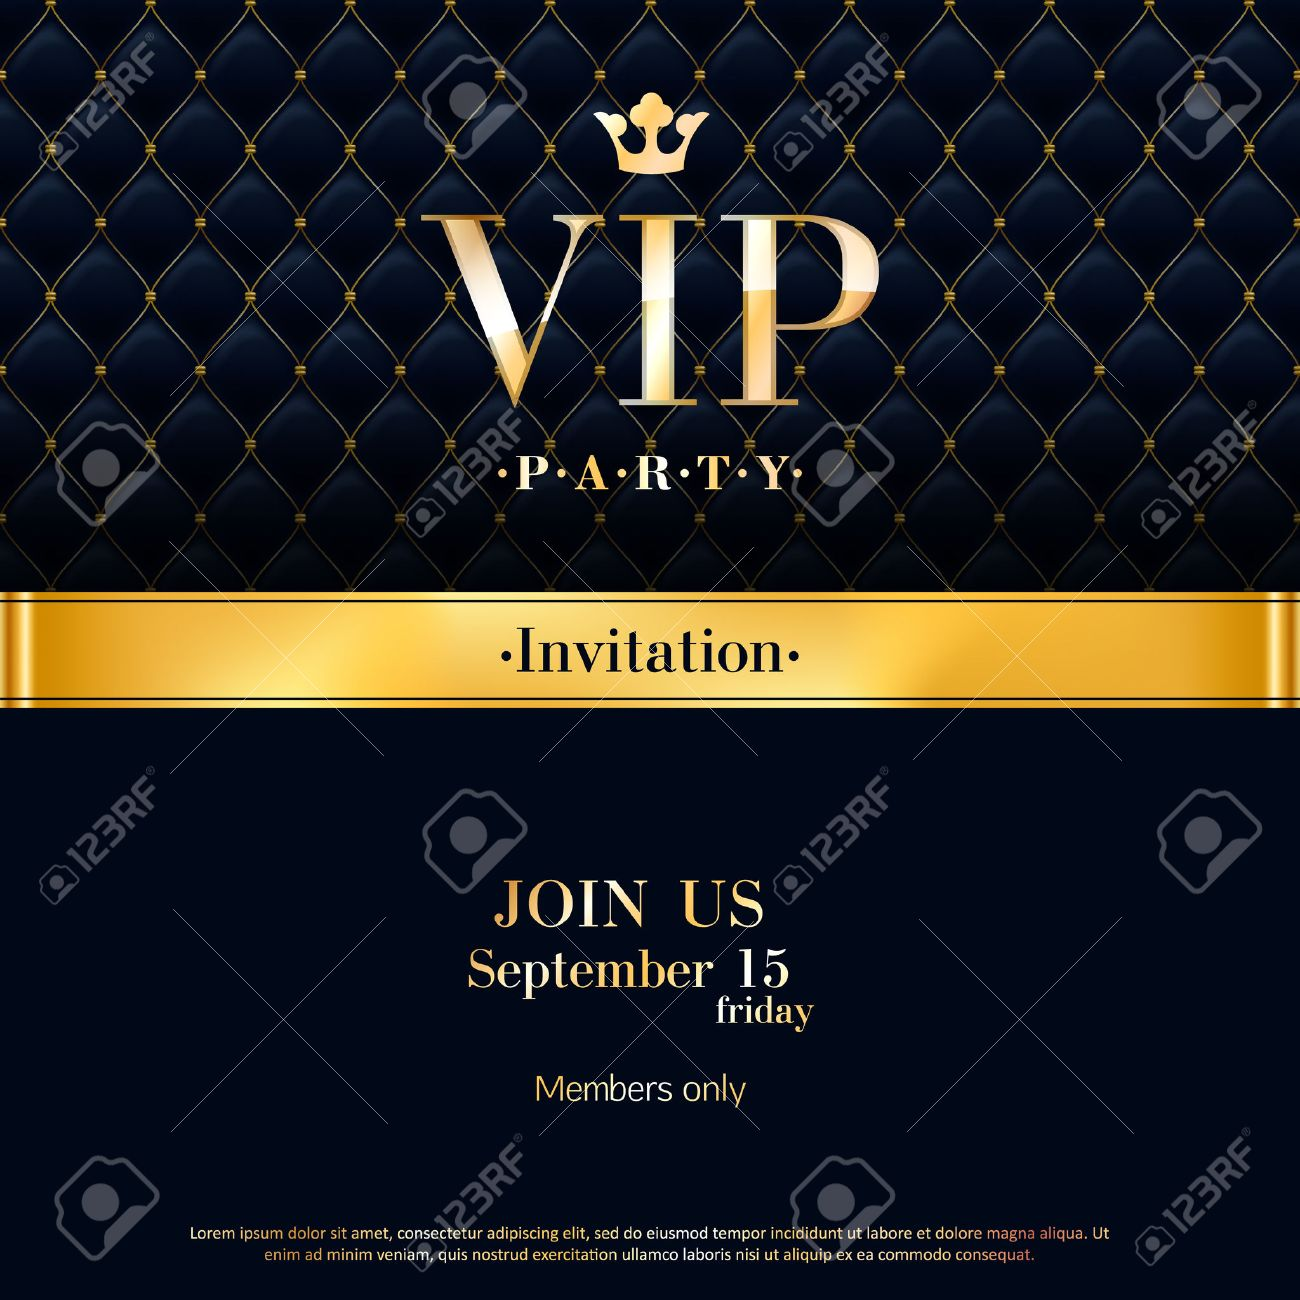 Vip party premium invitation card poster flyer black and golden vector vip party premium invitation card poster flyer black and golden design template quilted pattern decorative background with gold ribbon and round stopboris Gallery